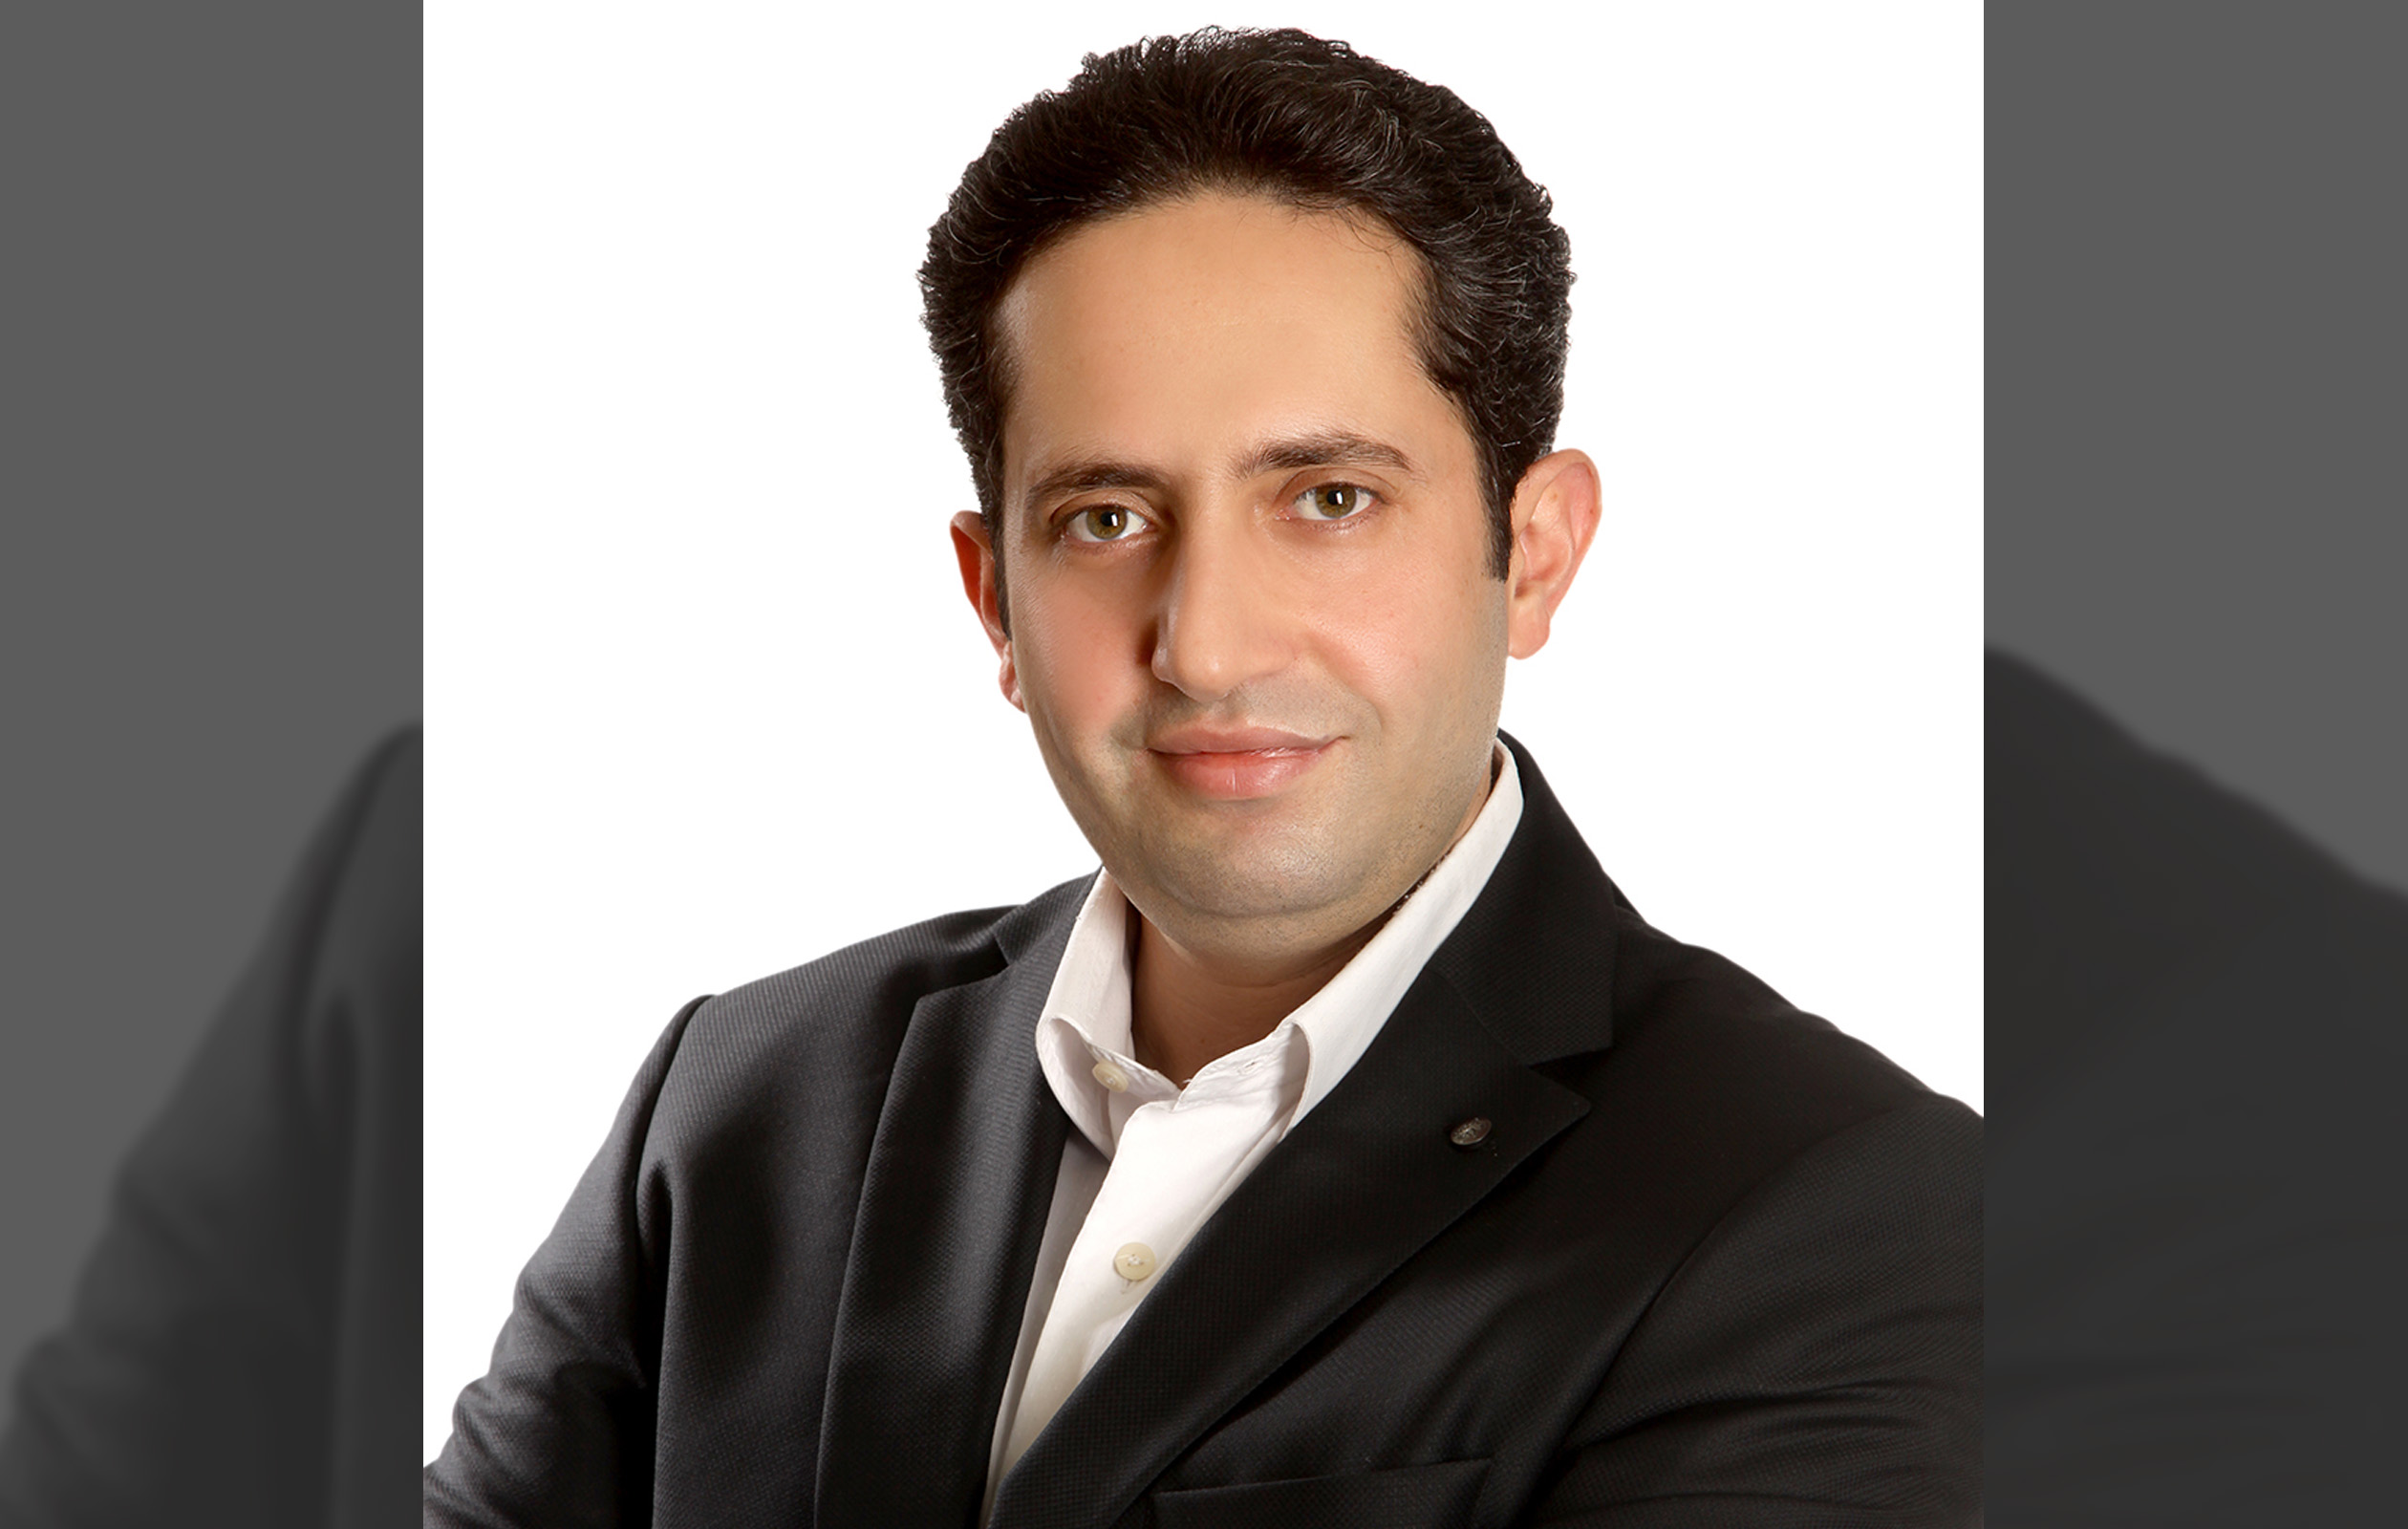 ammar country manager